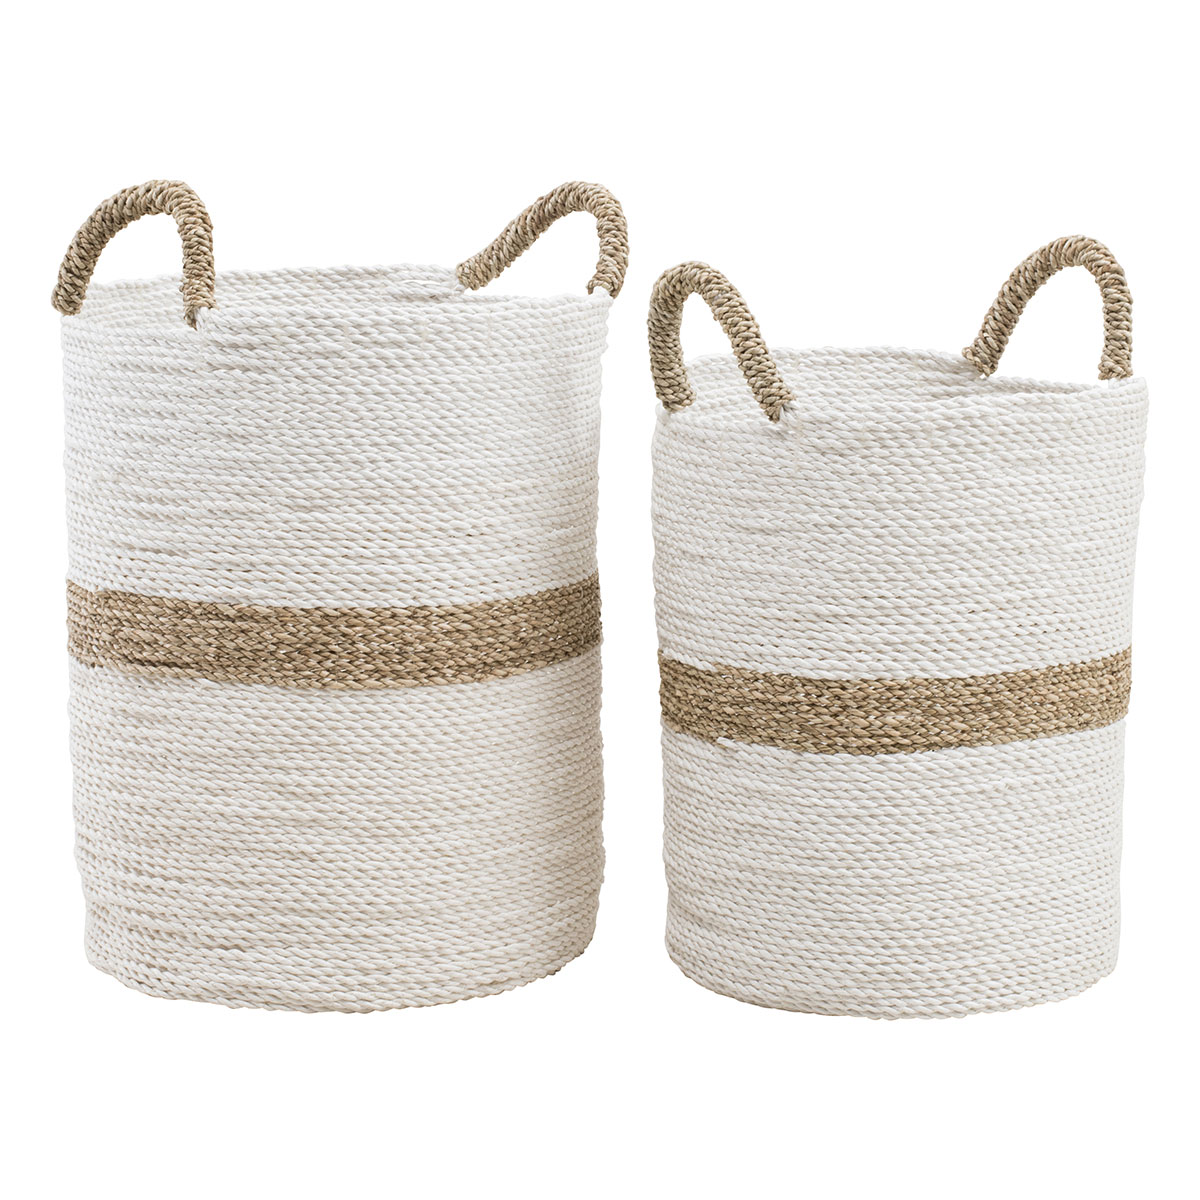 Artisan Stripe Baskets Set of 2 in White/Natural by OzDesignFurniture, a Baskets & Boxes for sale on Style Sourcebook